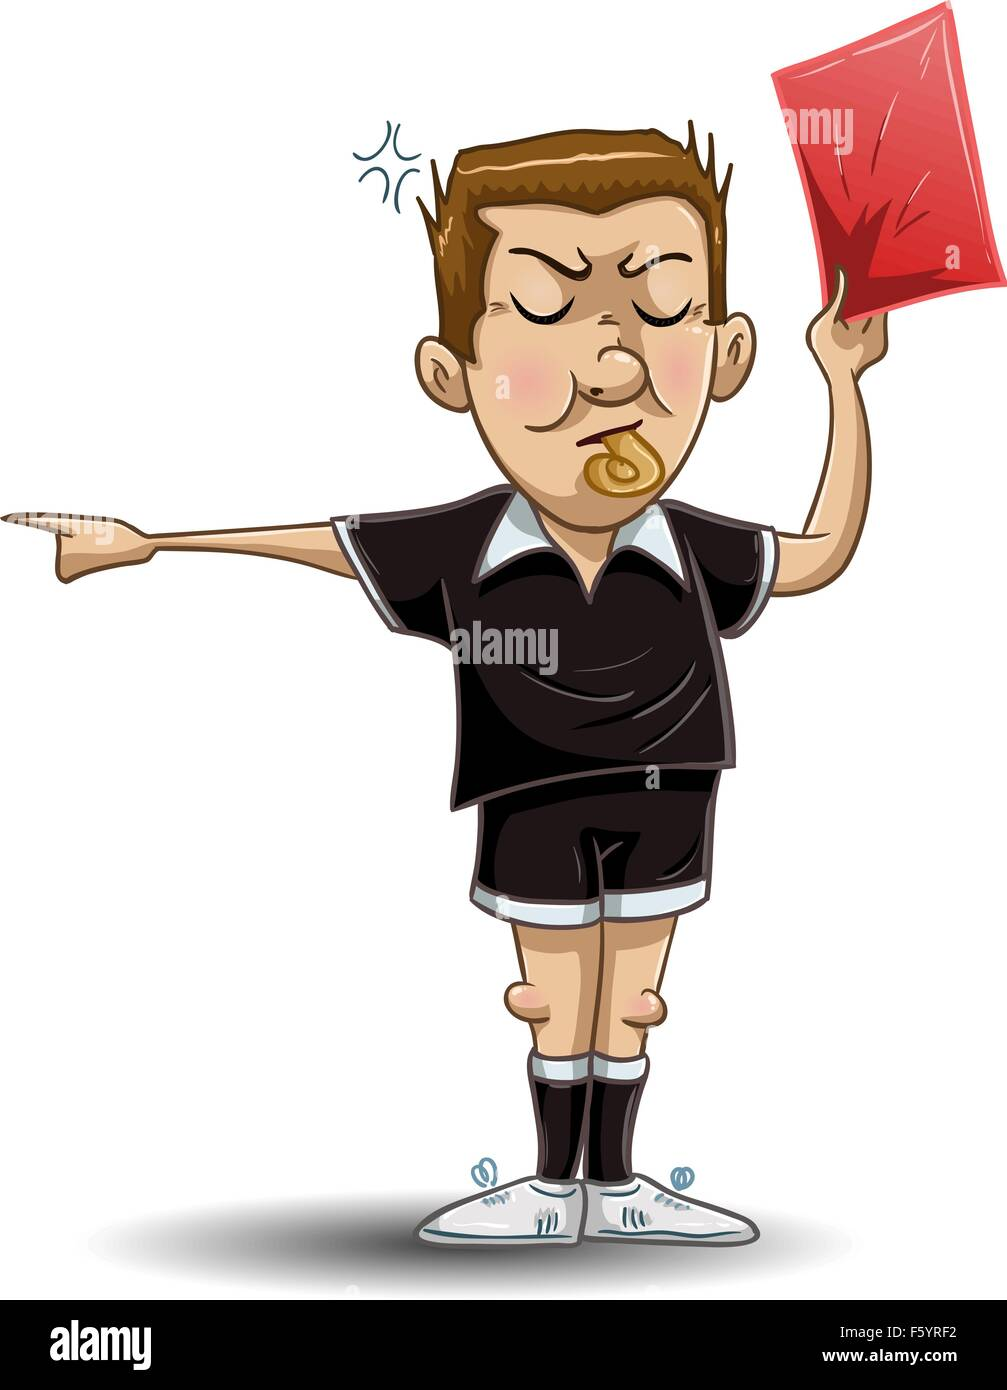 A Vector illustration of a soccer referee whistles, holds out a red card and points to the side. - Stock Image